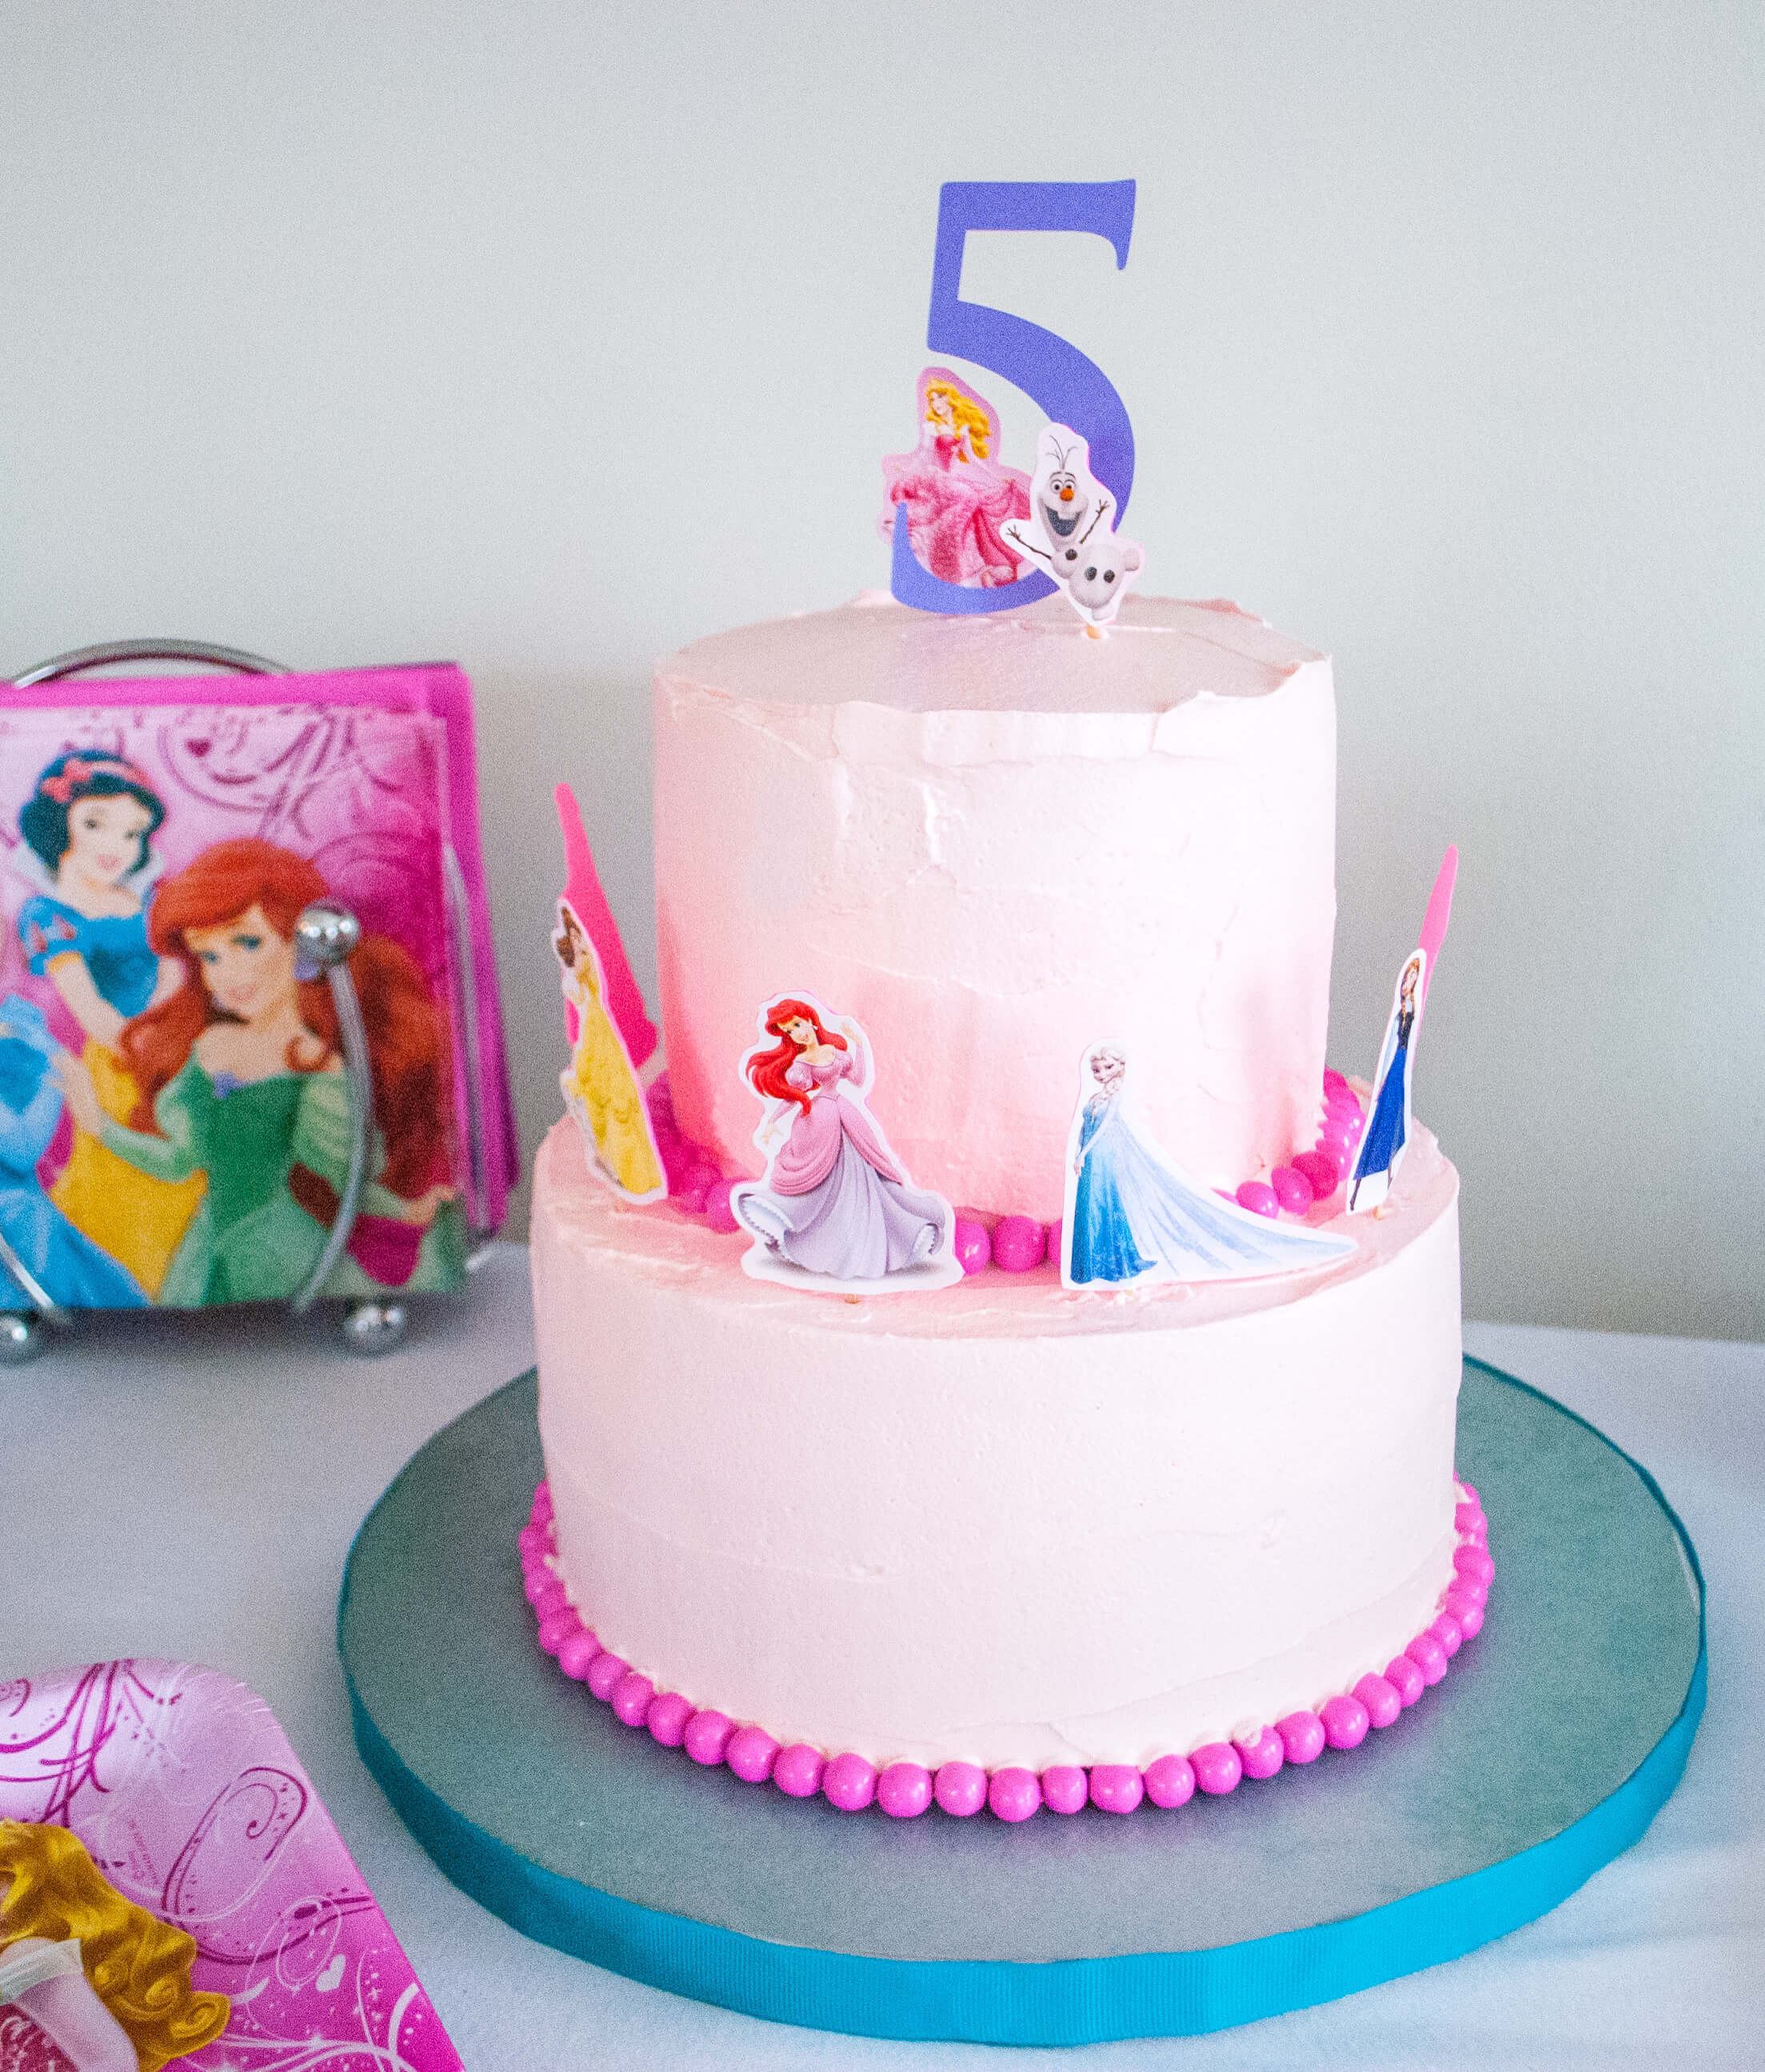 Best ideas about Princes Birthday Cake . Save or Pin Make an Easy Disney Princess Birthday Cake Using Stickers Now.